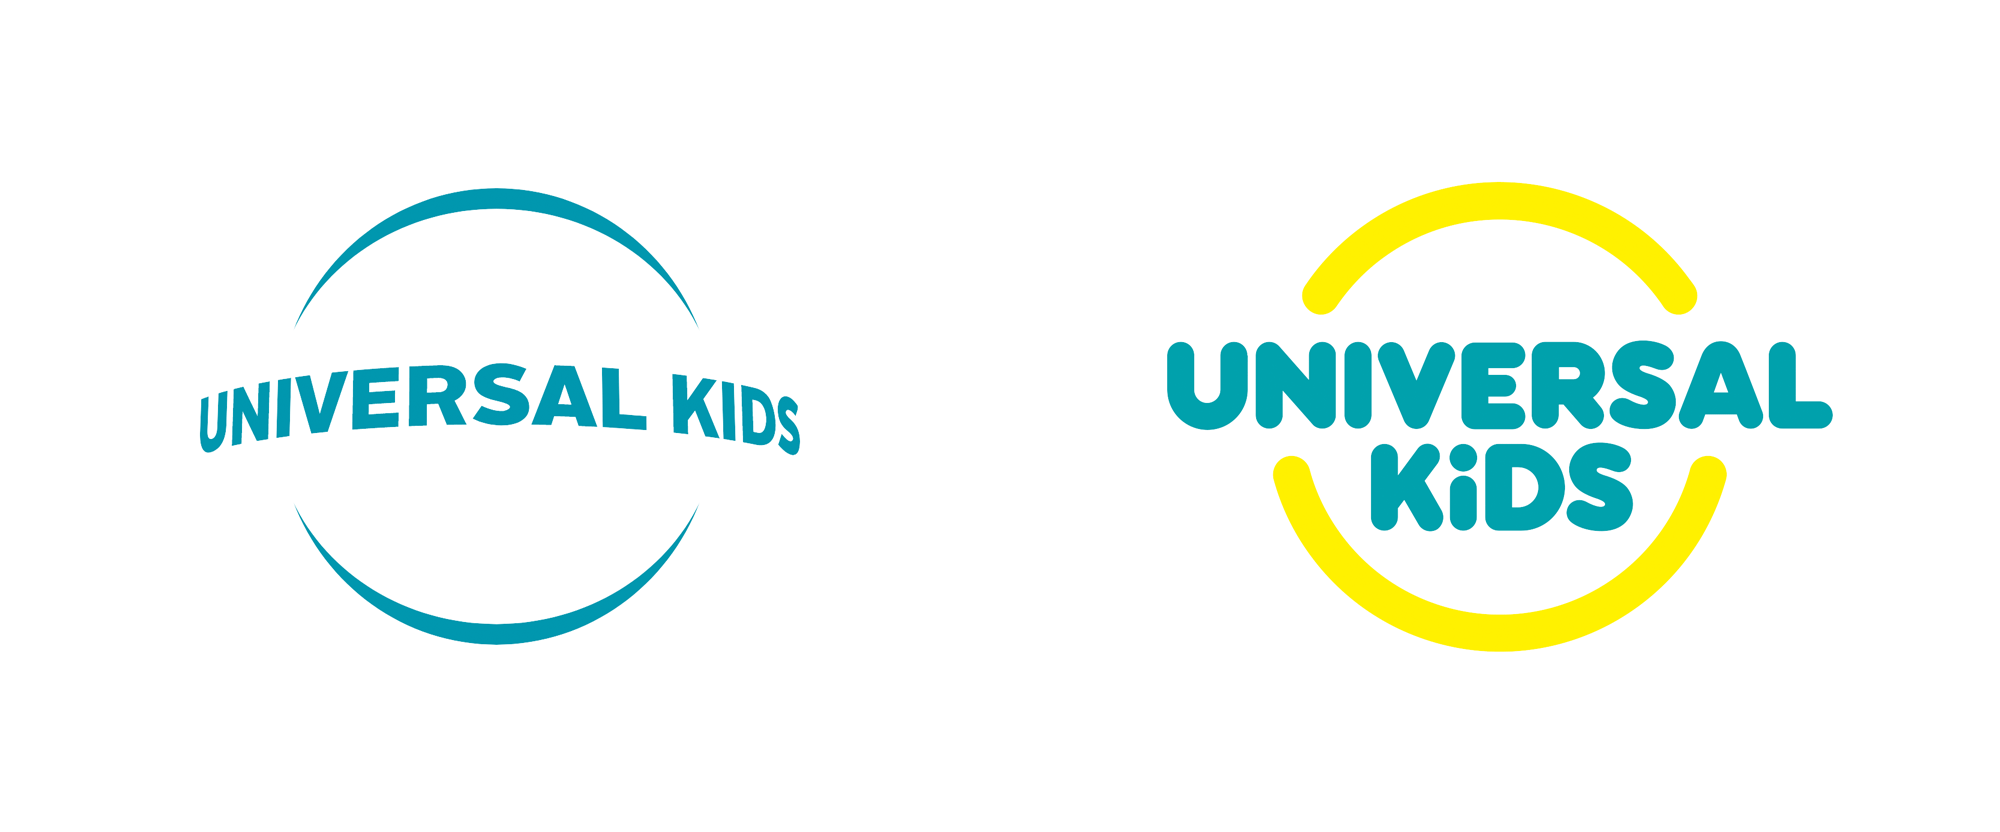 New Logo, Identity, and On-air Look for Universal Kids by Kill 2 Birds